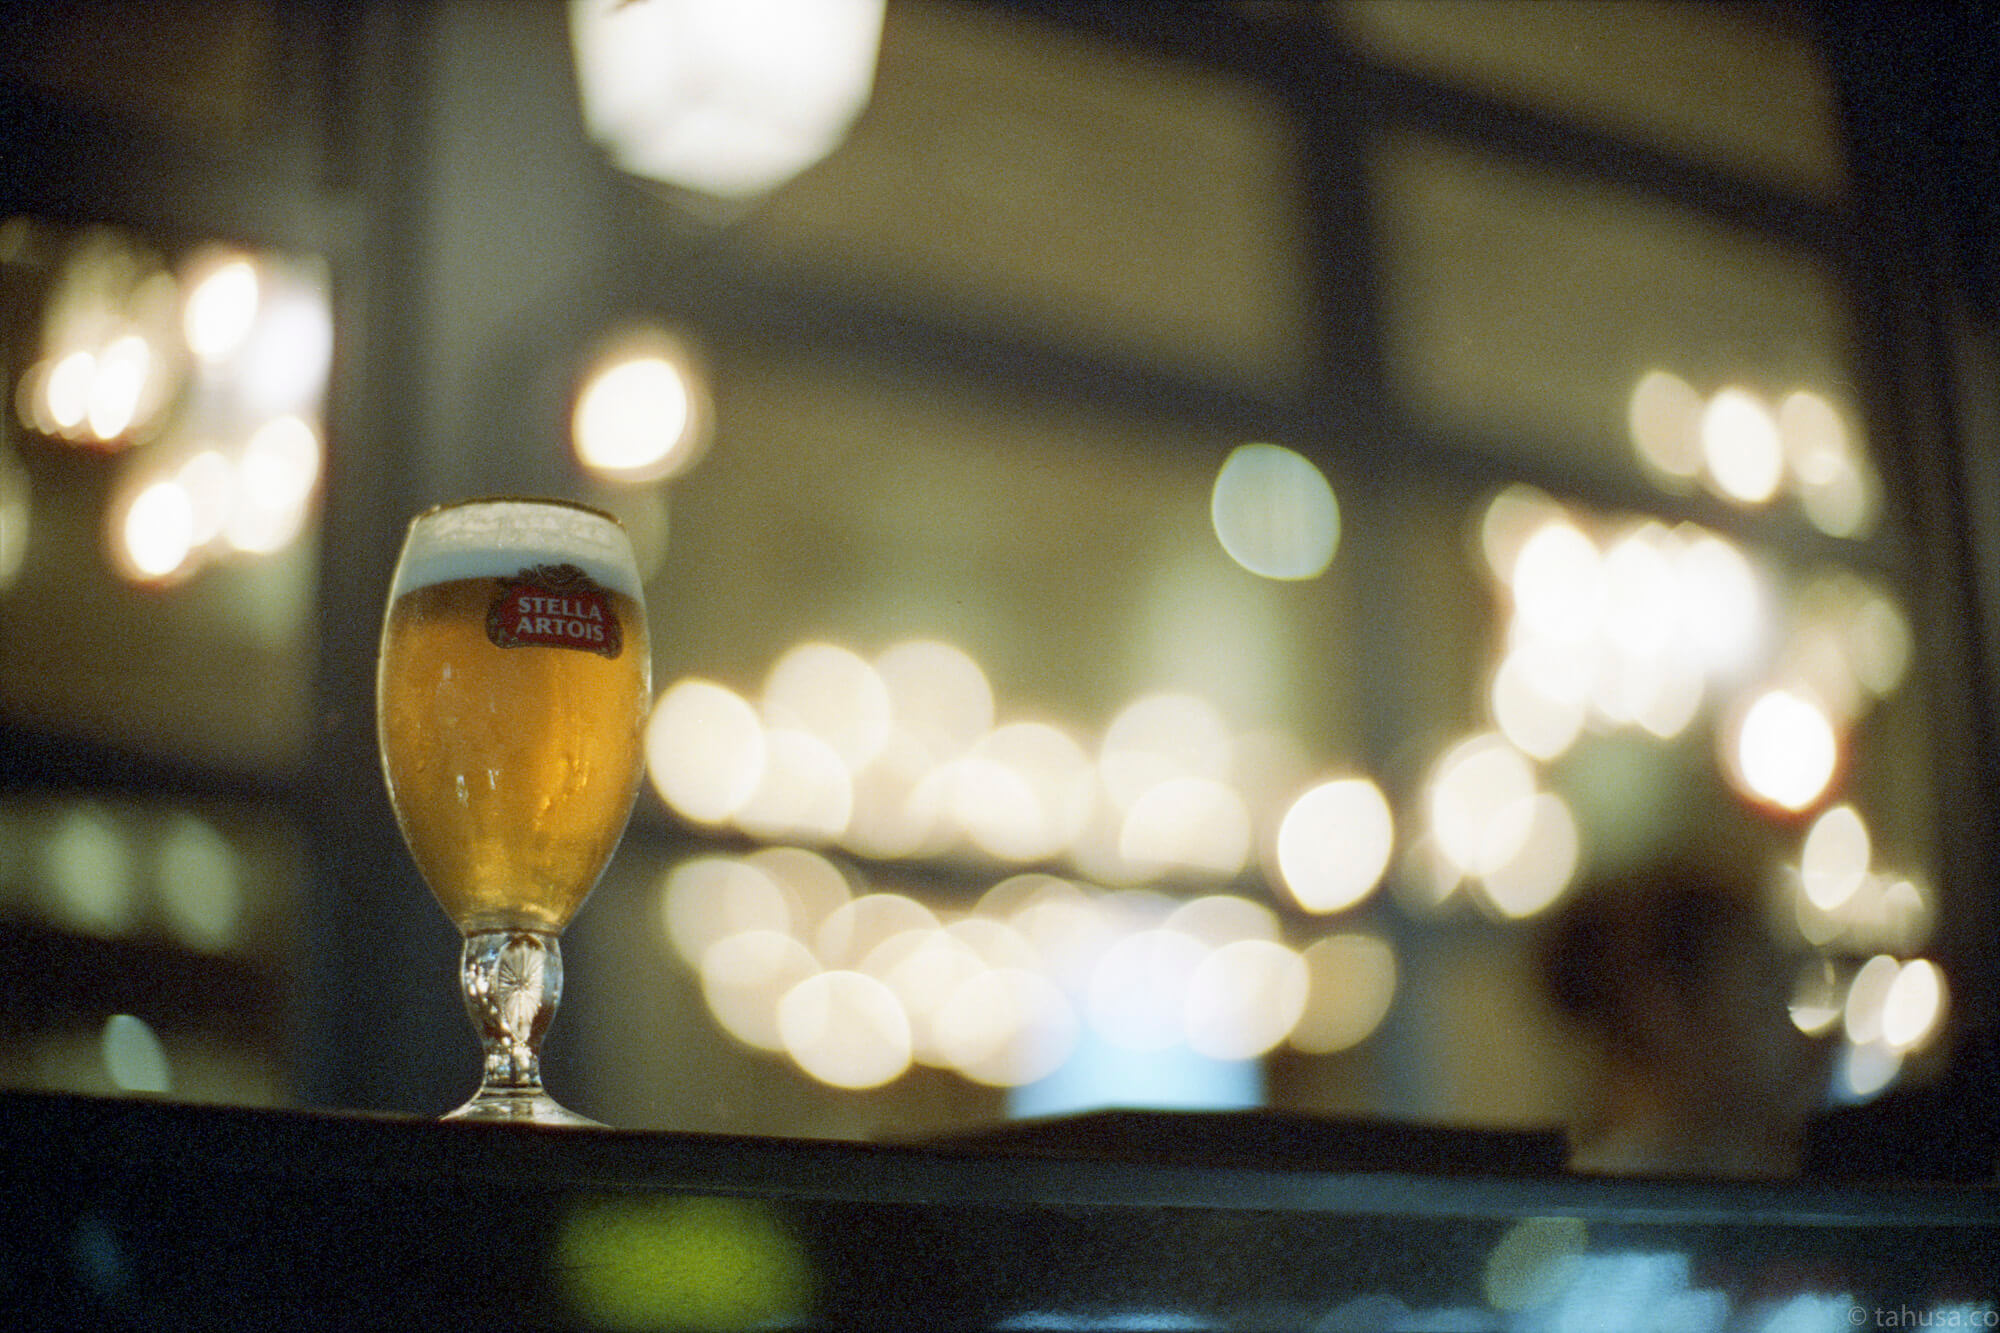 bokeh-blur-smooth-beer-bar-pattaya-thailand-HK-Cinestill-800T-800-iso800-Tungsten-film-movie-kodak-with-Noctilux-50mm-f1-f1.0-e58-v1-large-aperture-bokeh-grain-pushed